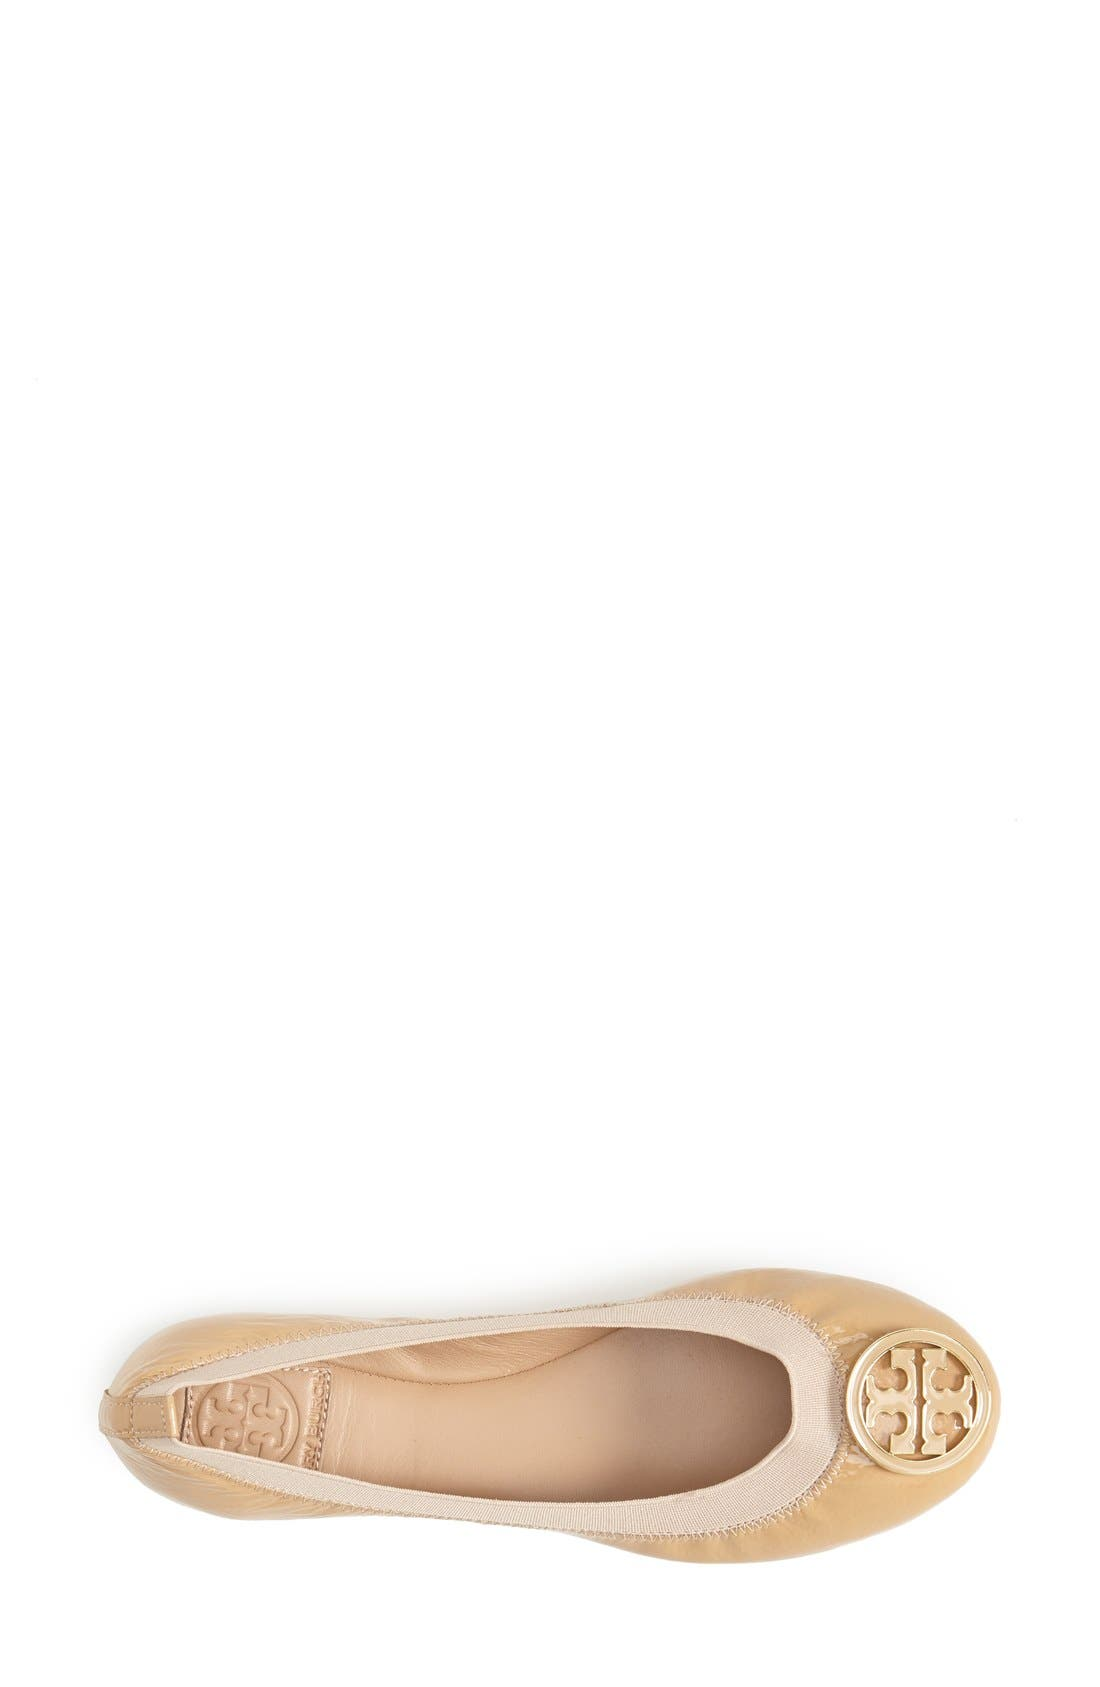 Alternate Image 3  - Tory Burch 'Caroline' Ballerina Flat (Women)